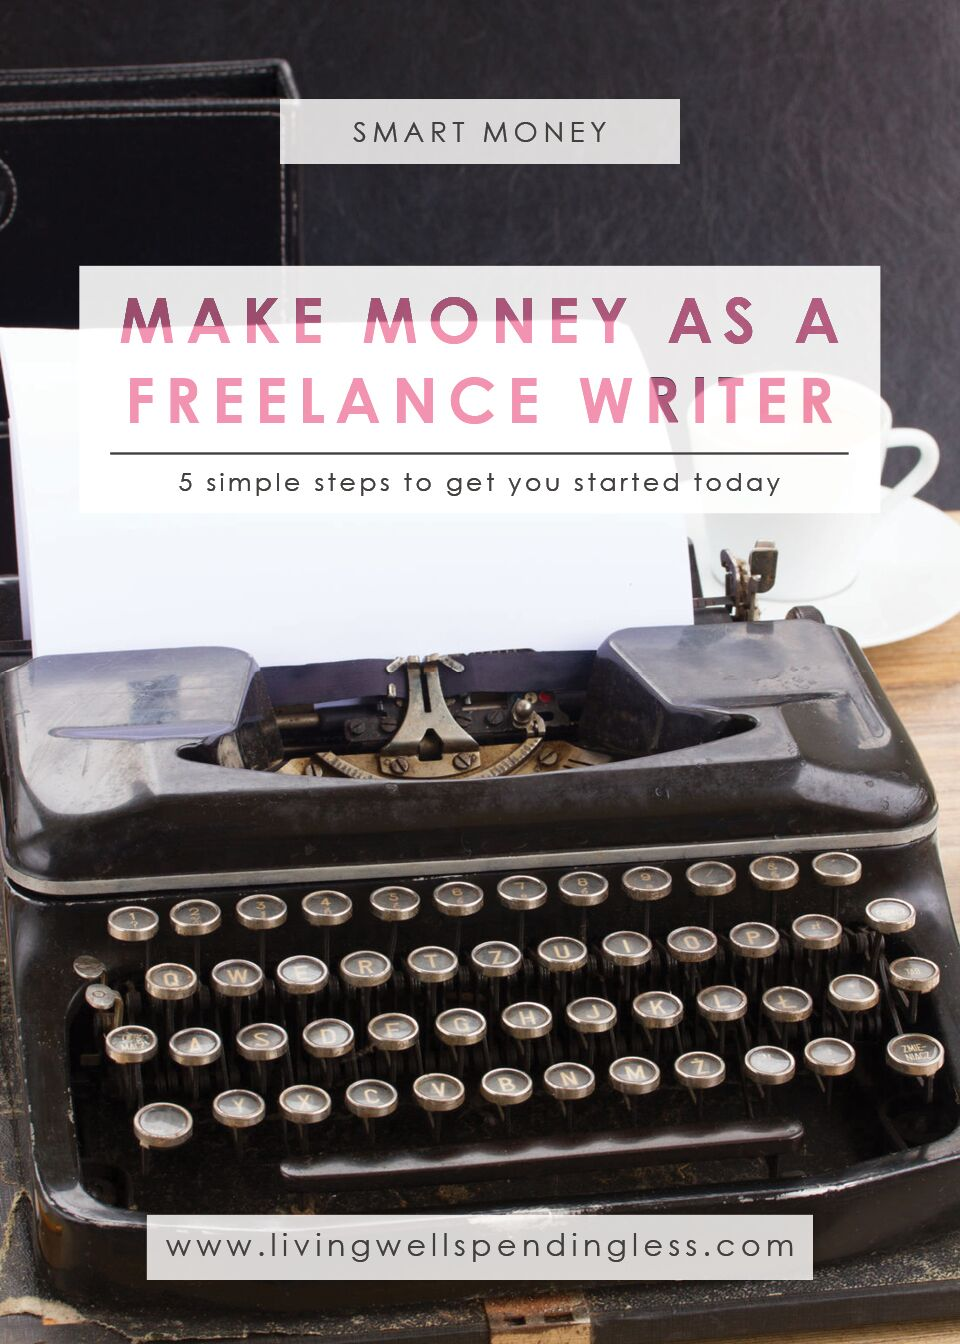 Make Money as a Freelance Writer | Make More Money | Money Saving Tips | Saving & Investing | Freelance Writing